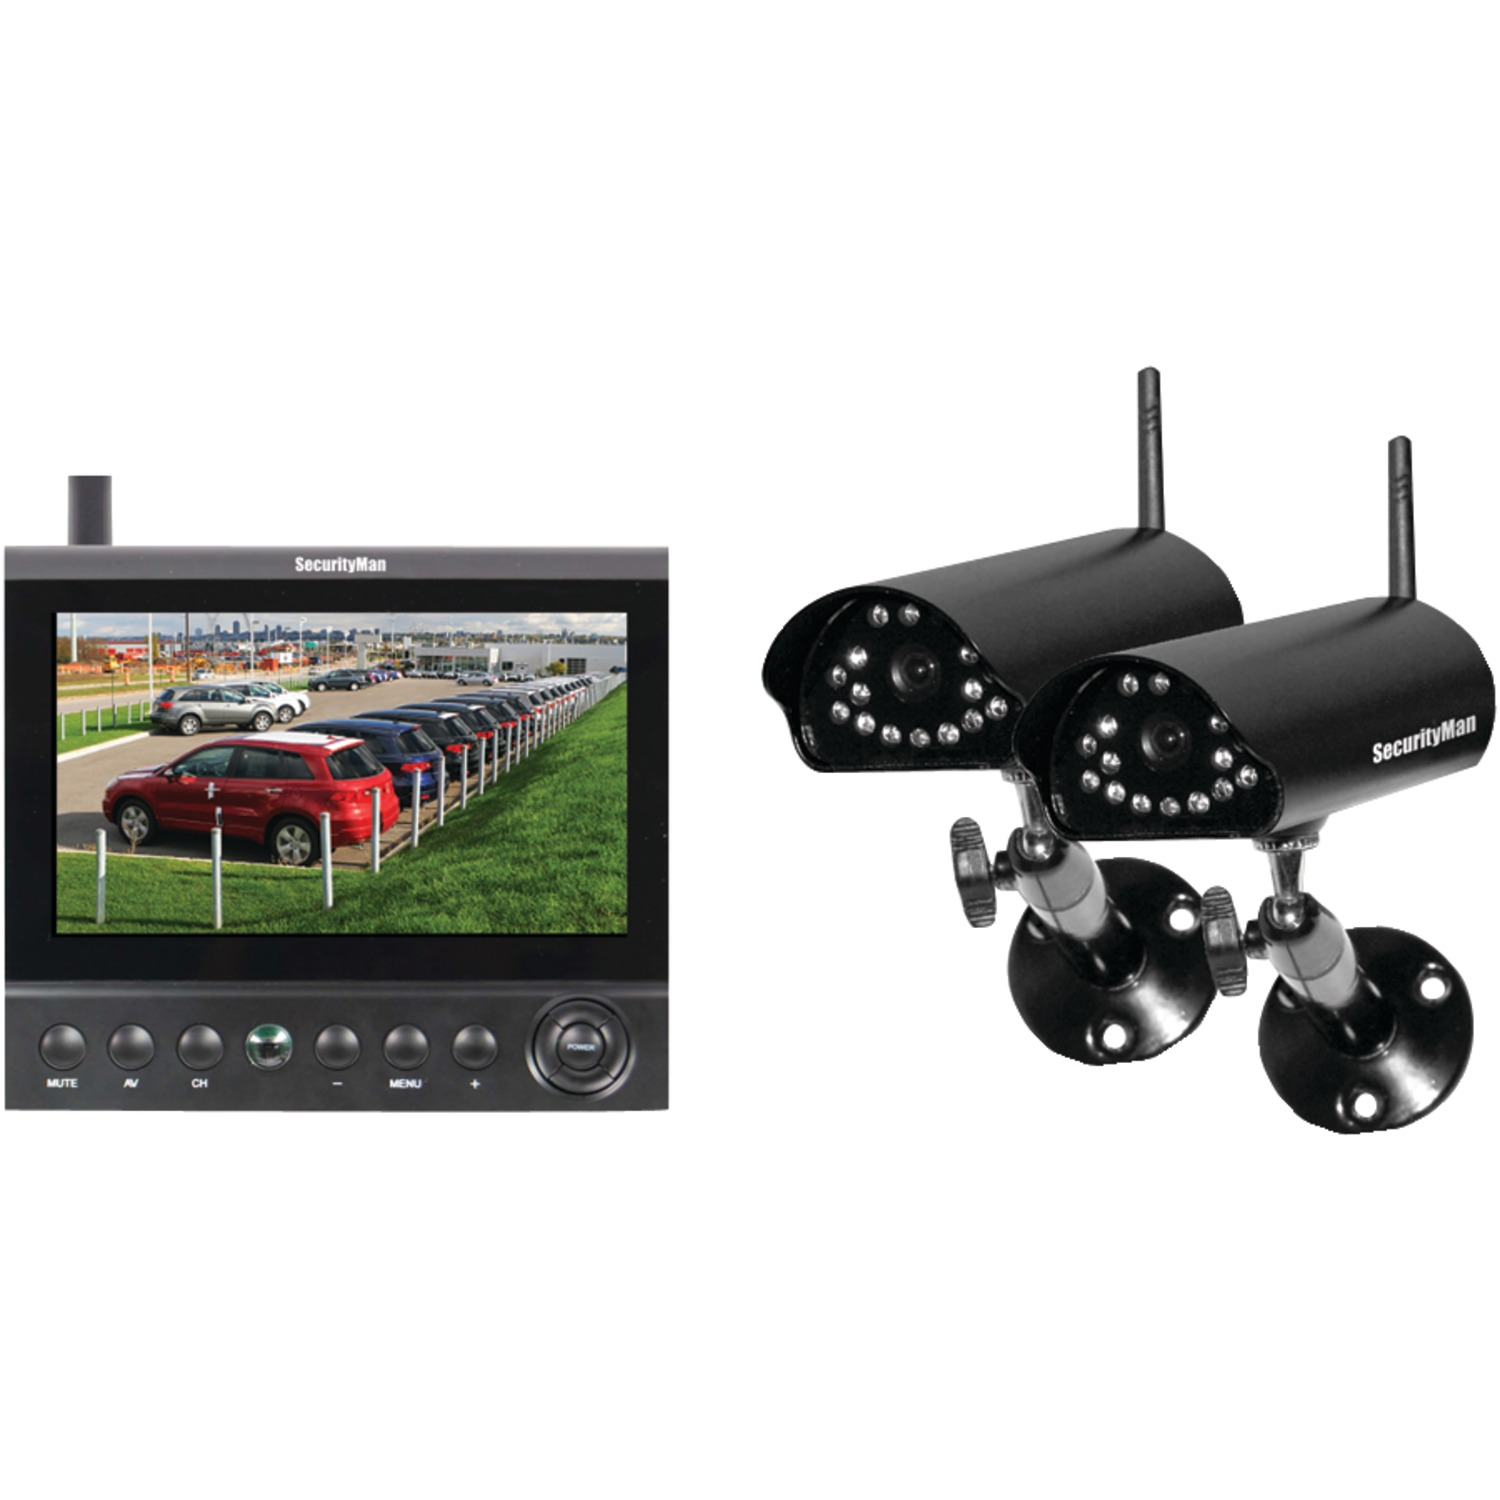 Cordless Wireless Security Camera System